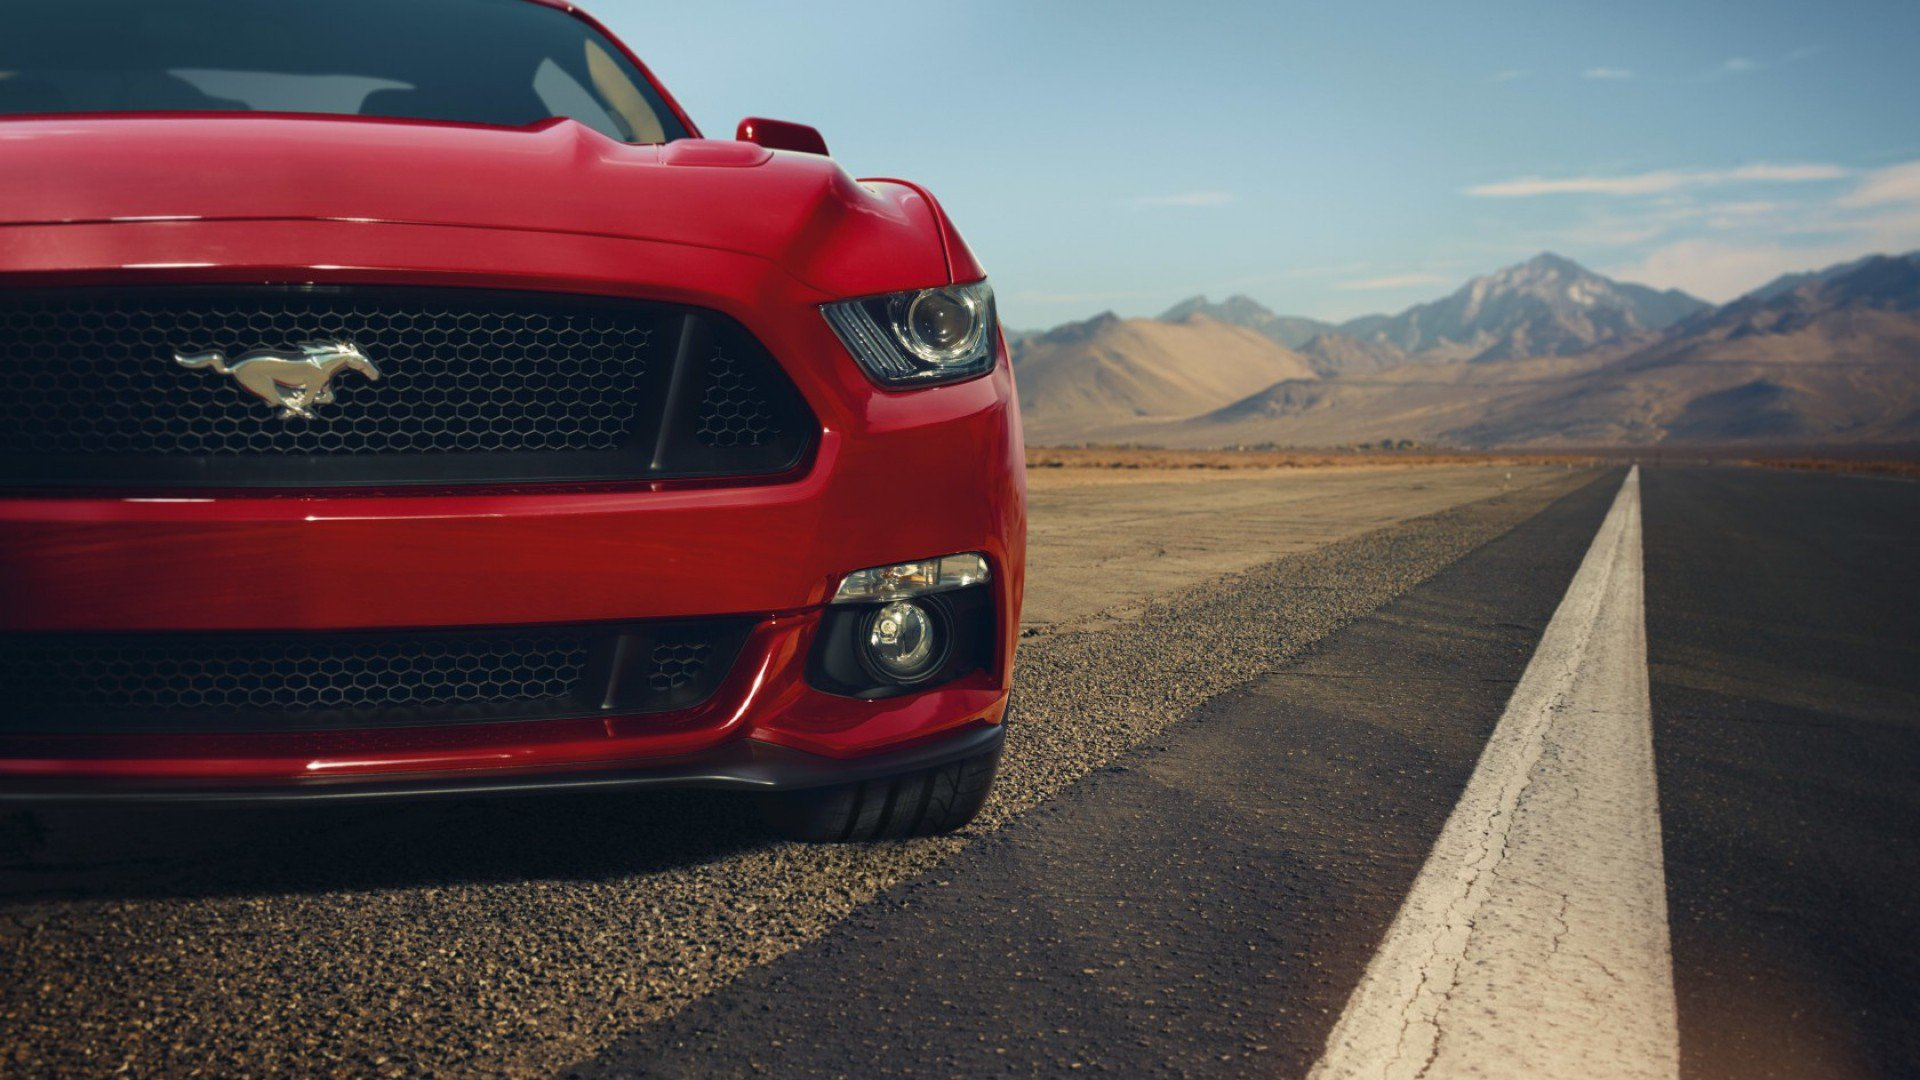 Ford Mustang Gt Red Front Muscle Car Hd Cars 4k Wallpapers Images Backgrounds Photos And Pictures